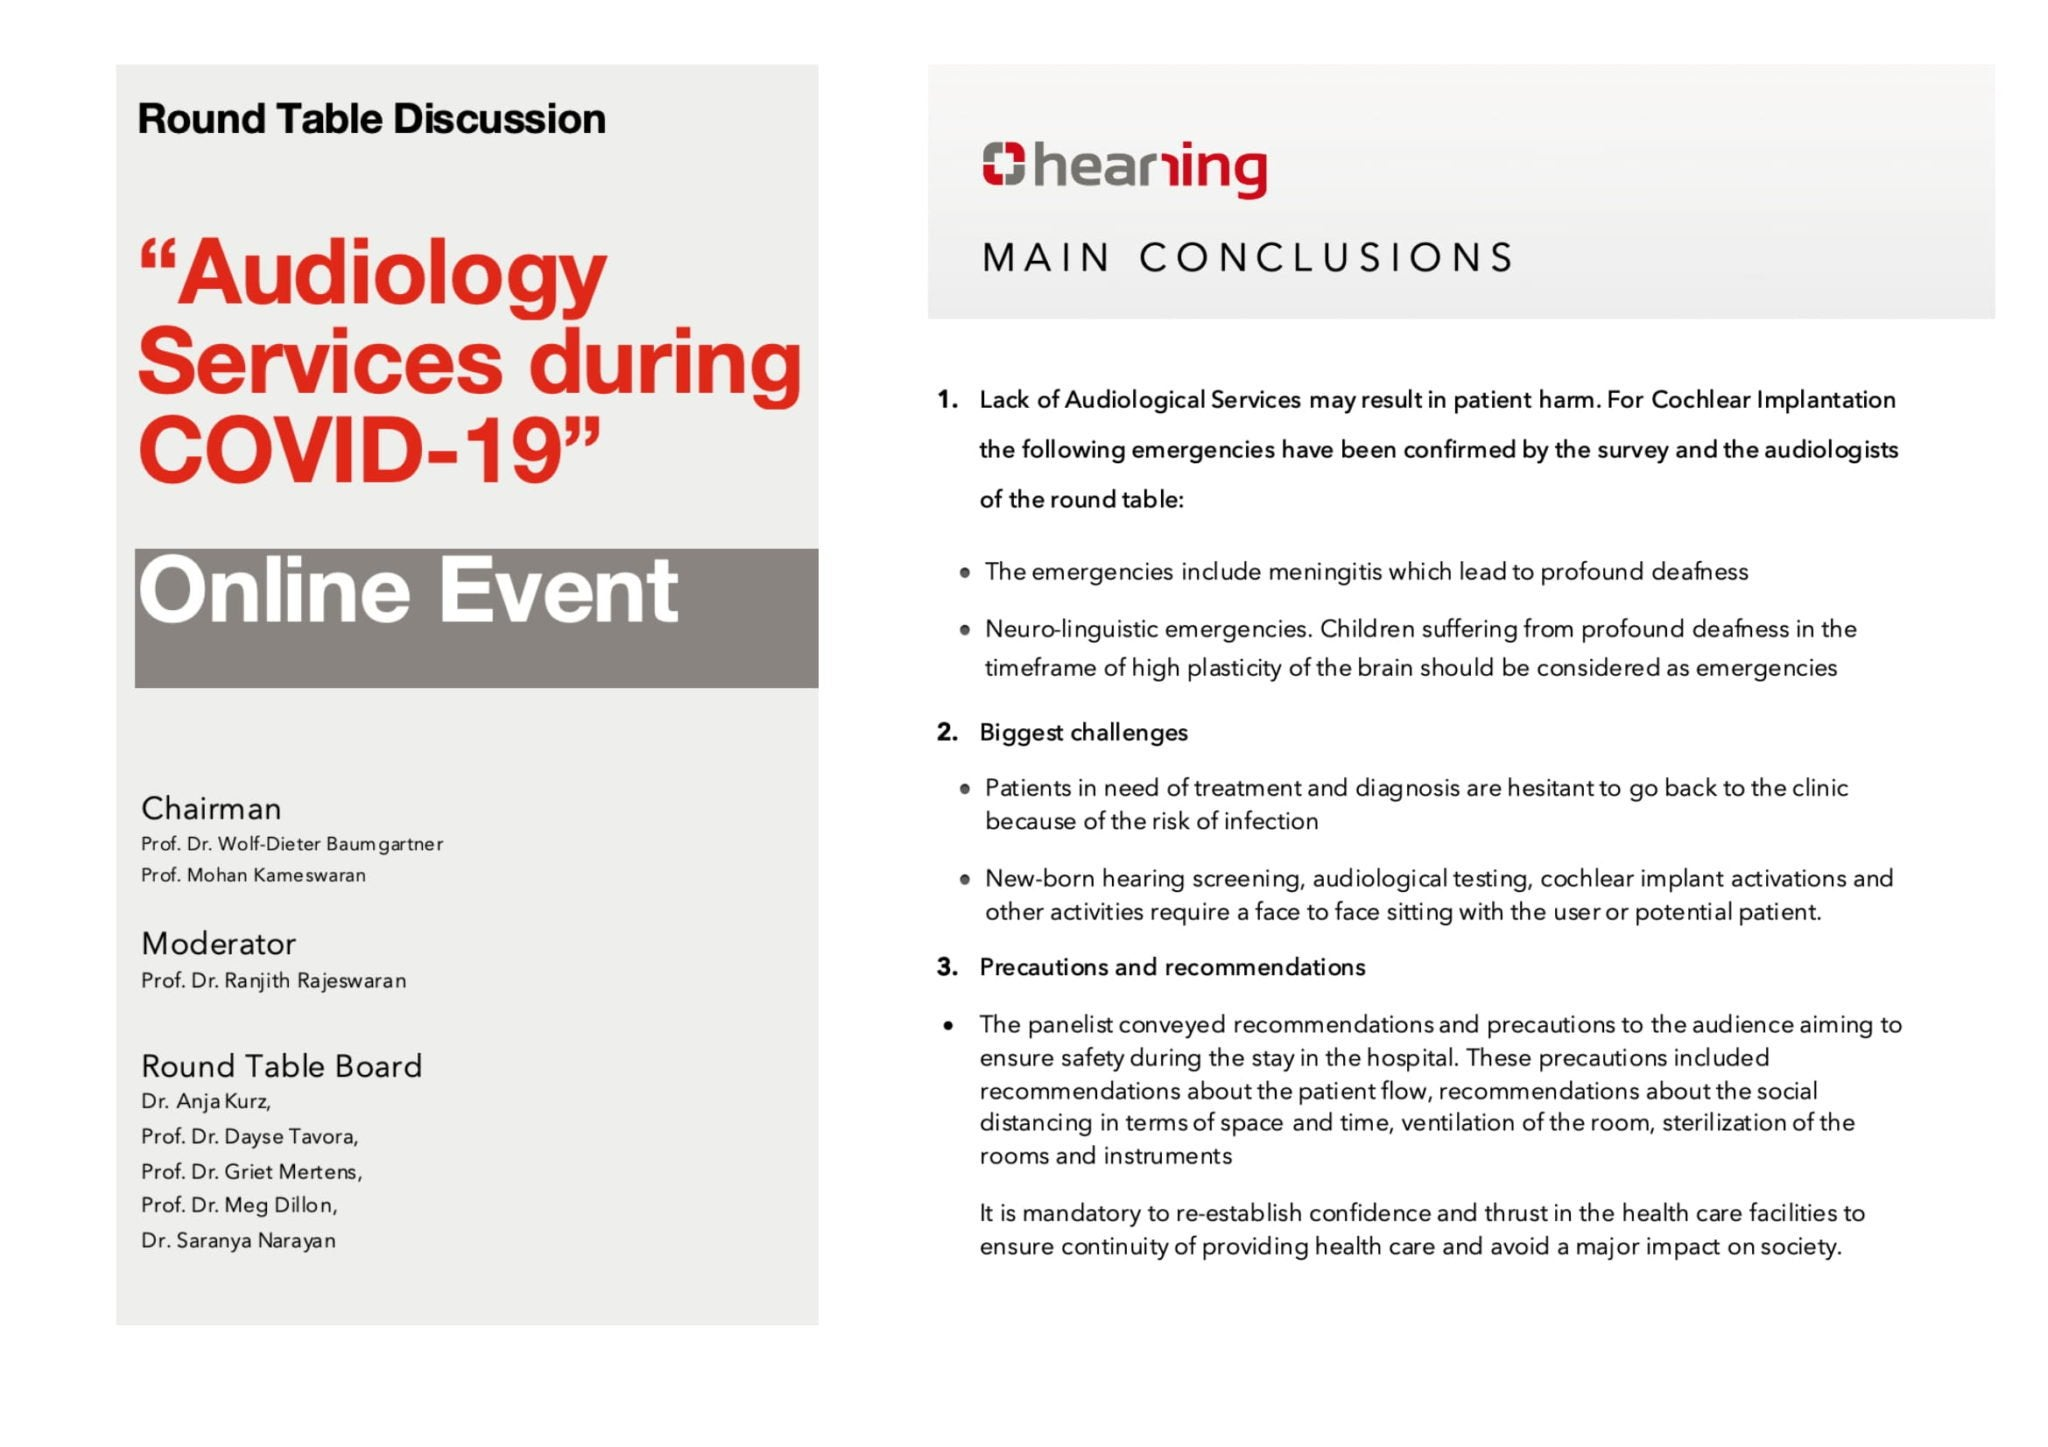 audiology services covid19 online discussion Hearring